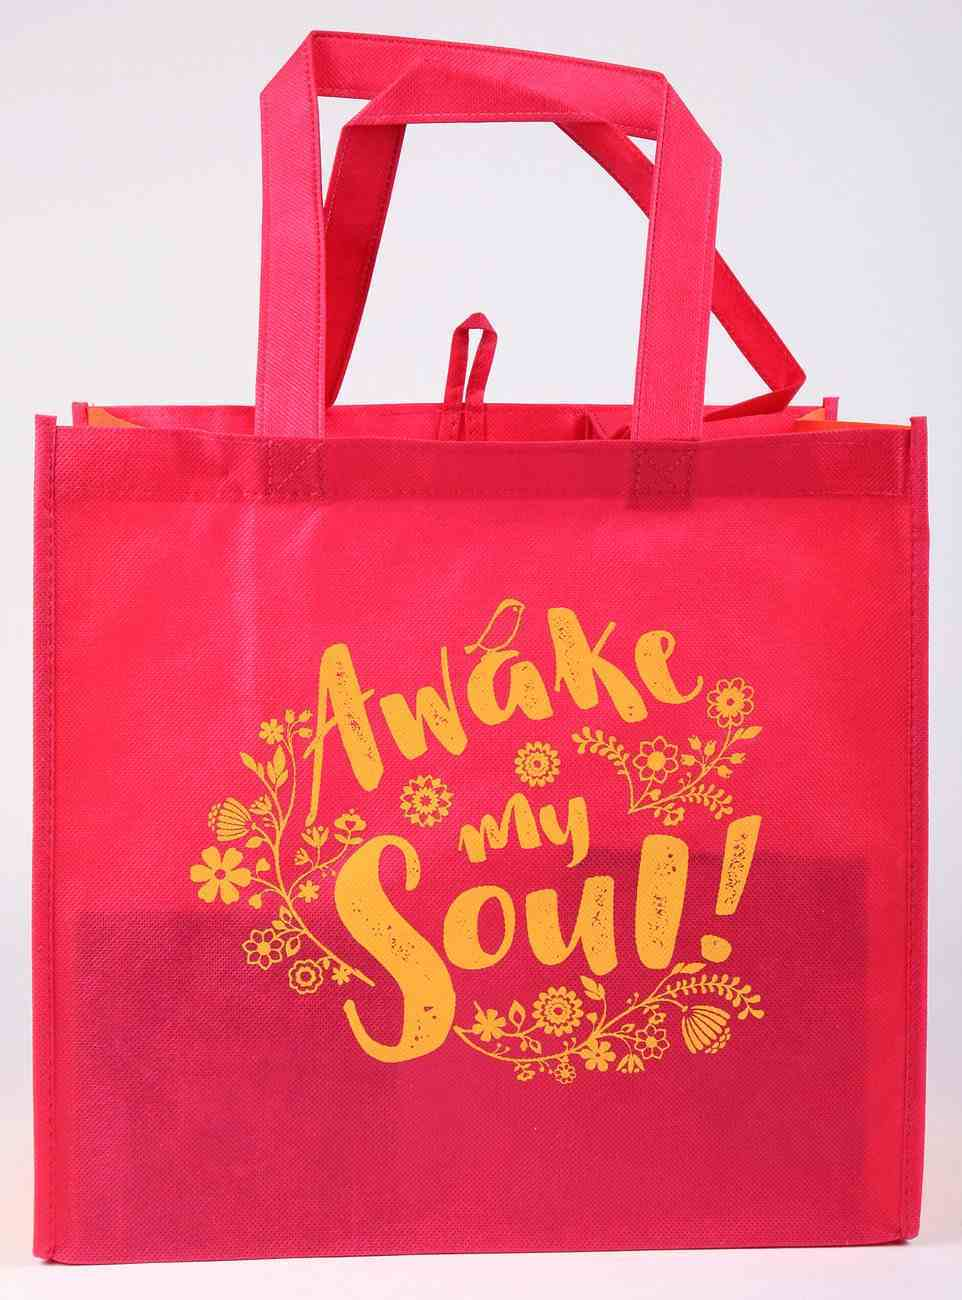 Tote Bag: Awake My Soul!, Red/Orange Soft Goods